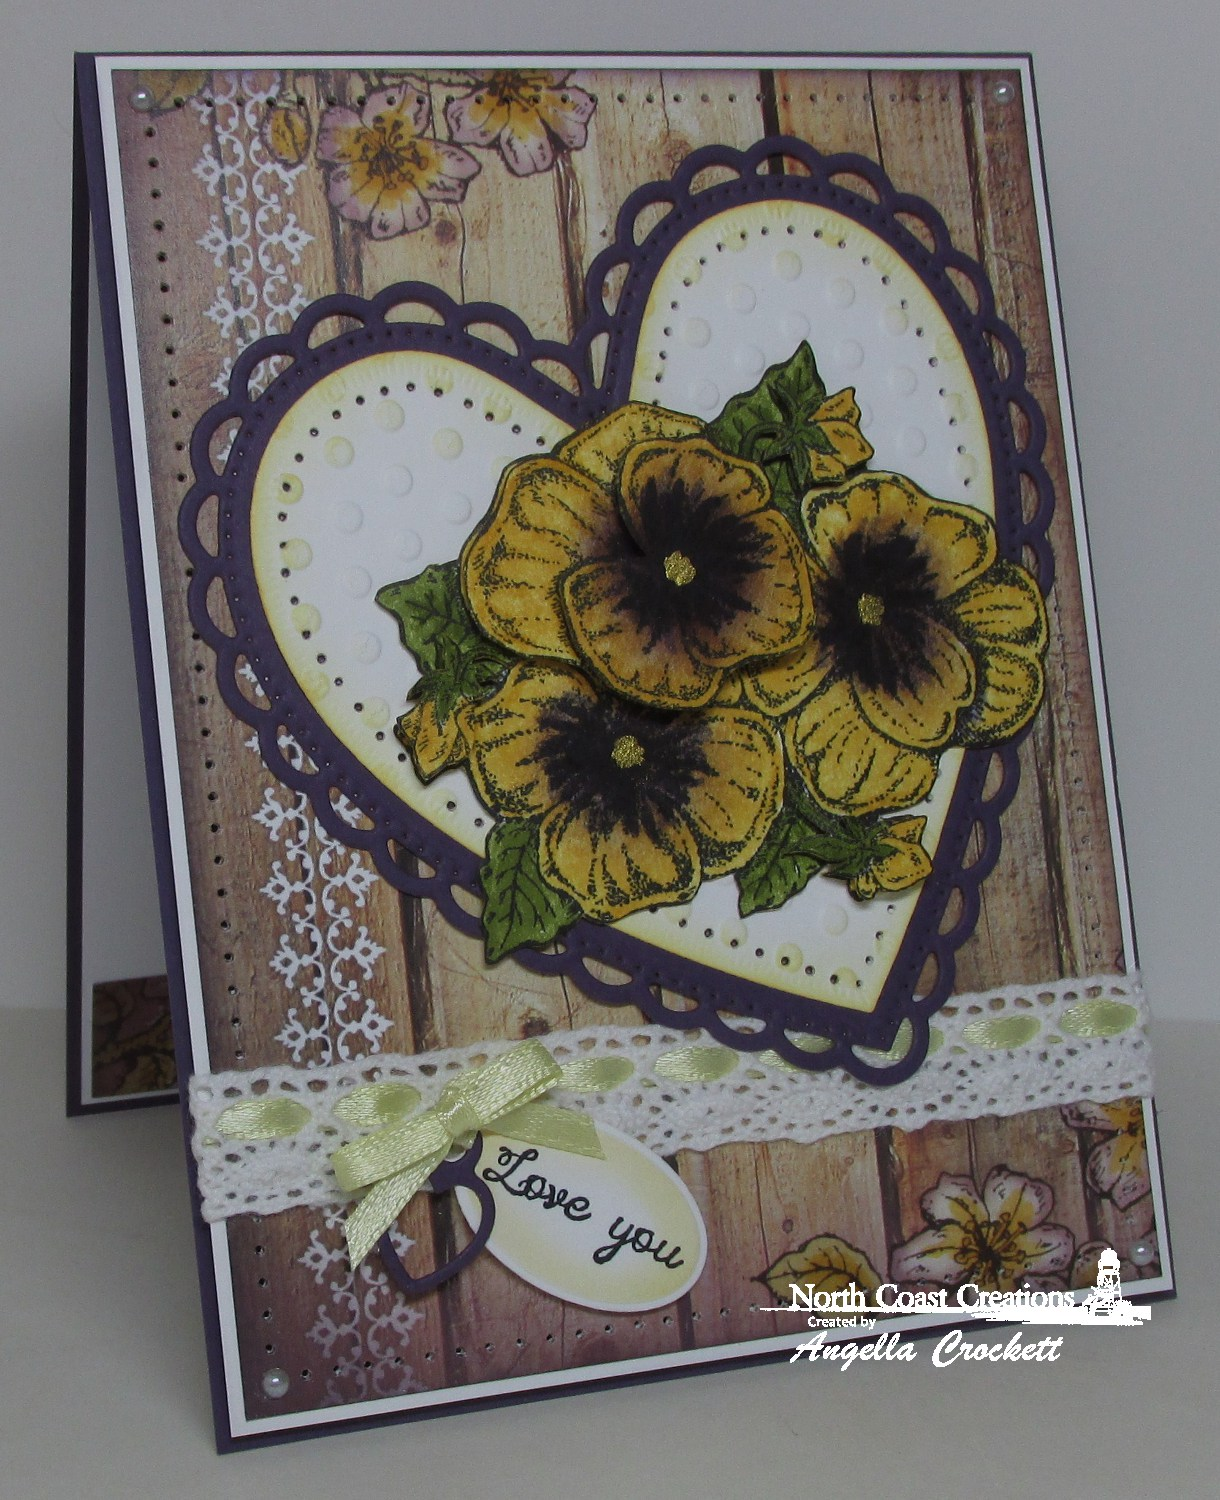 Stamps - North Coast Creation Pansies, ODBD Custom Ornate Hearts Dies, ODBD Custom Mini Tags Dies, ODBD Rustic Beauty Paper Collection